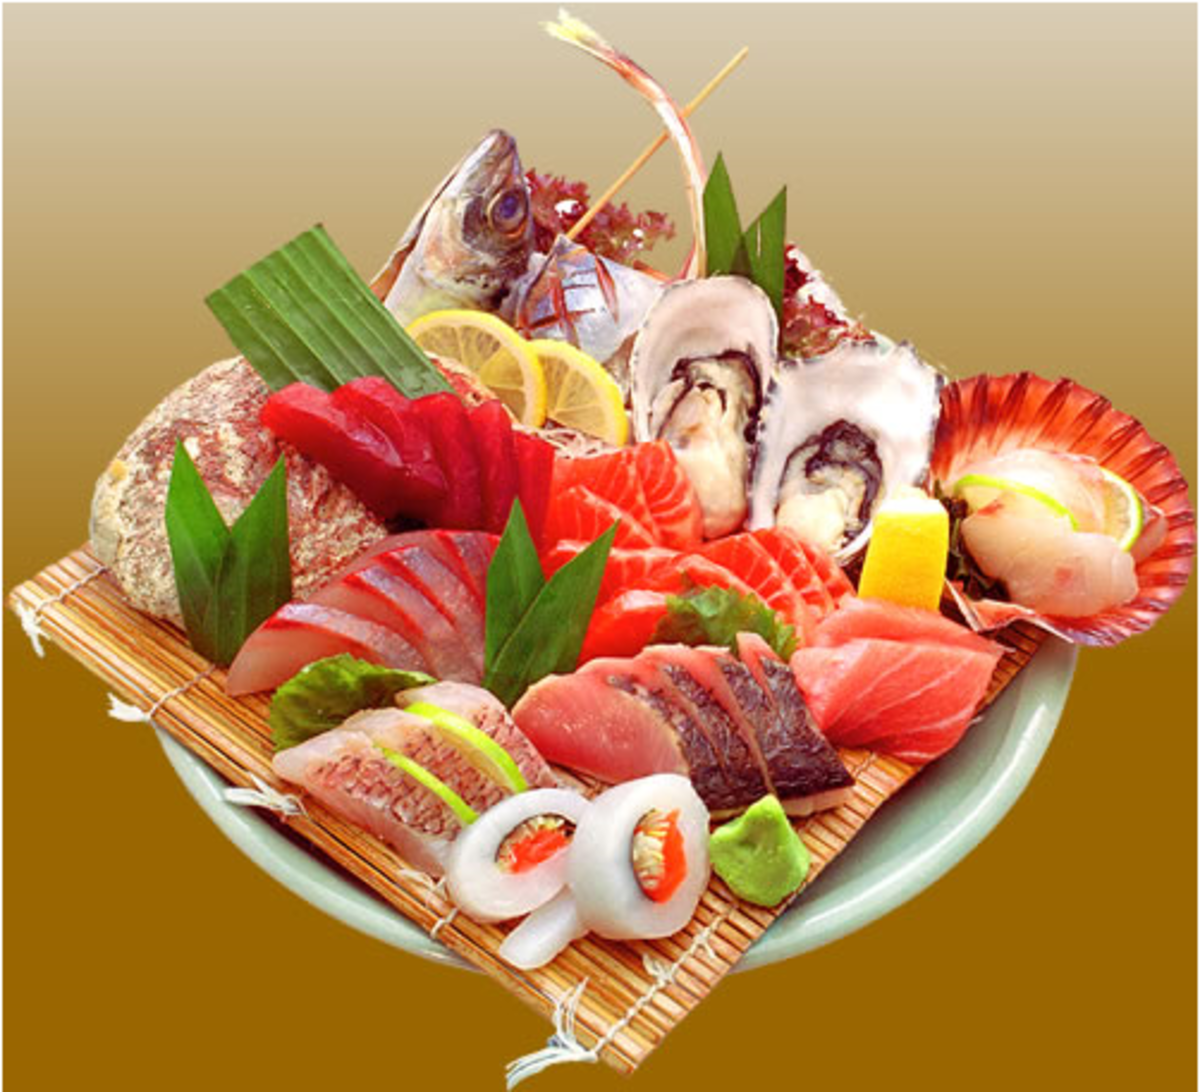 A Plateful of Sashimi